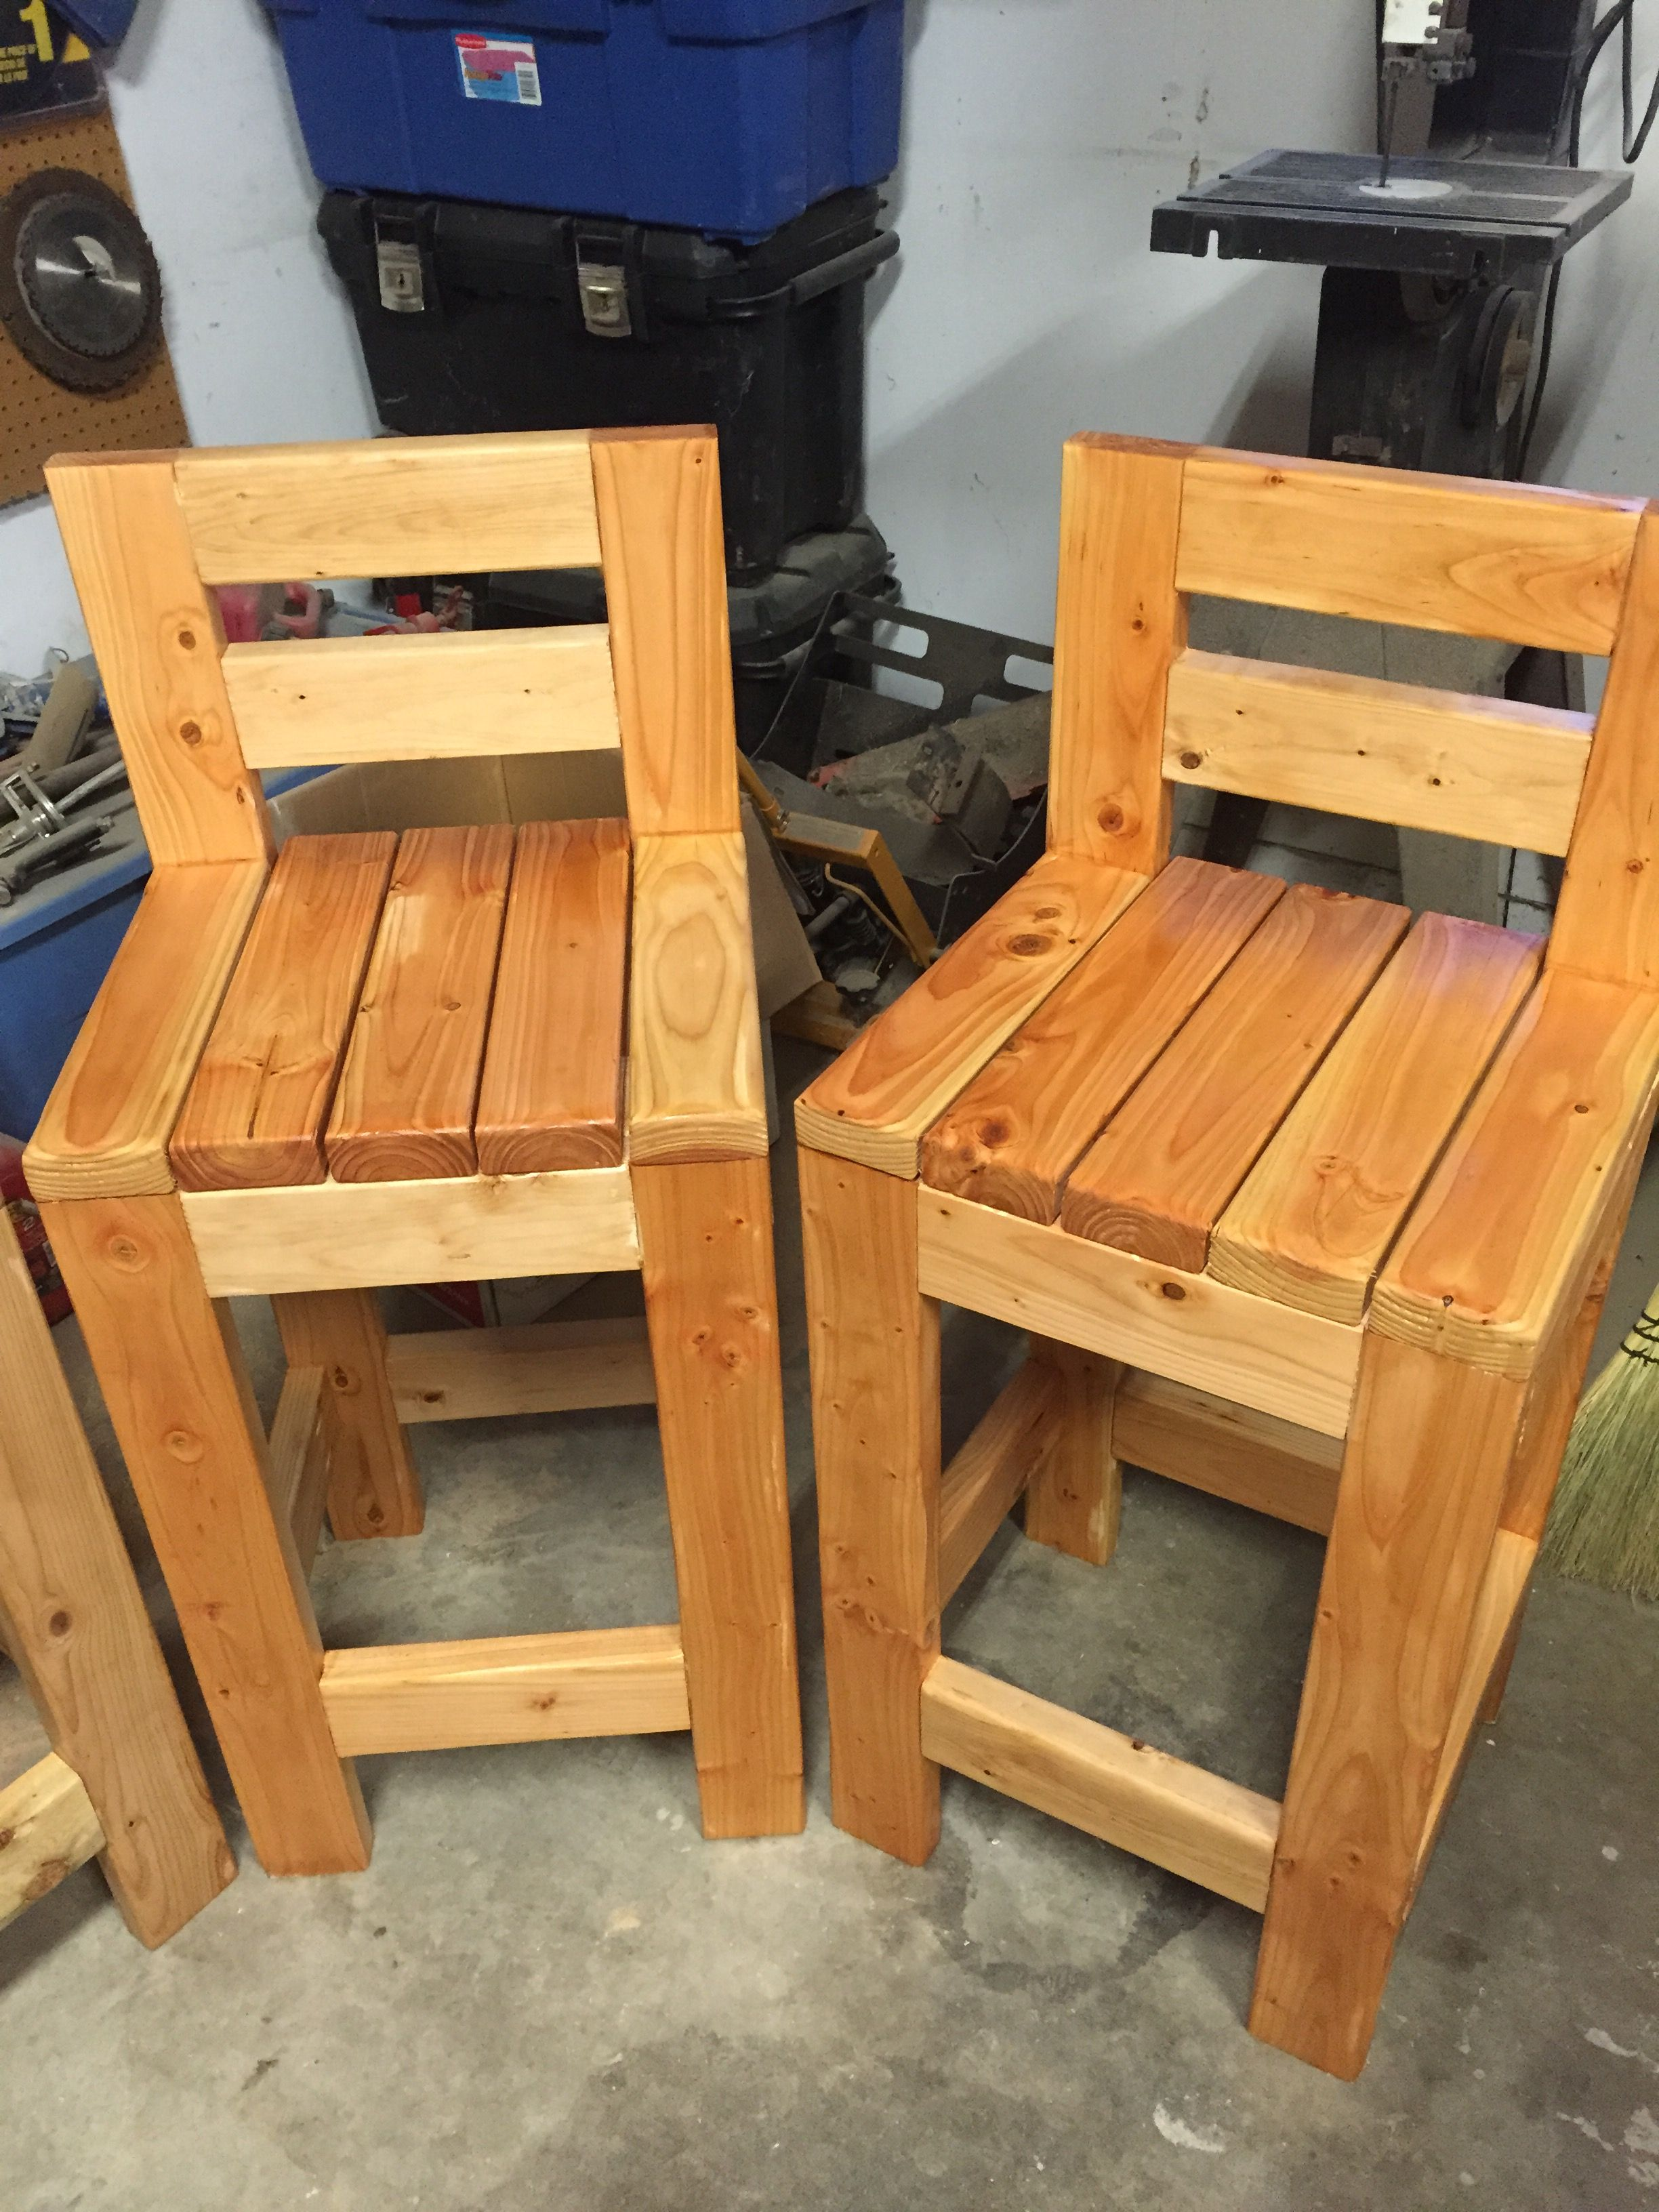 2x4 barstools. I built 4 stools for about 25 bucks a piece